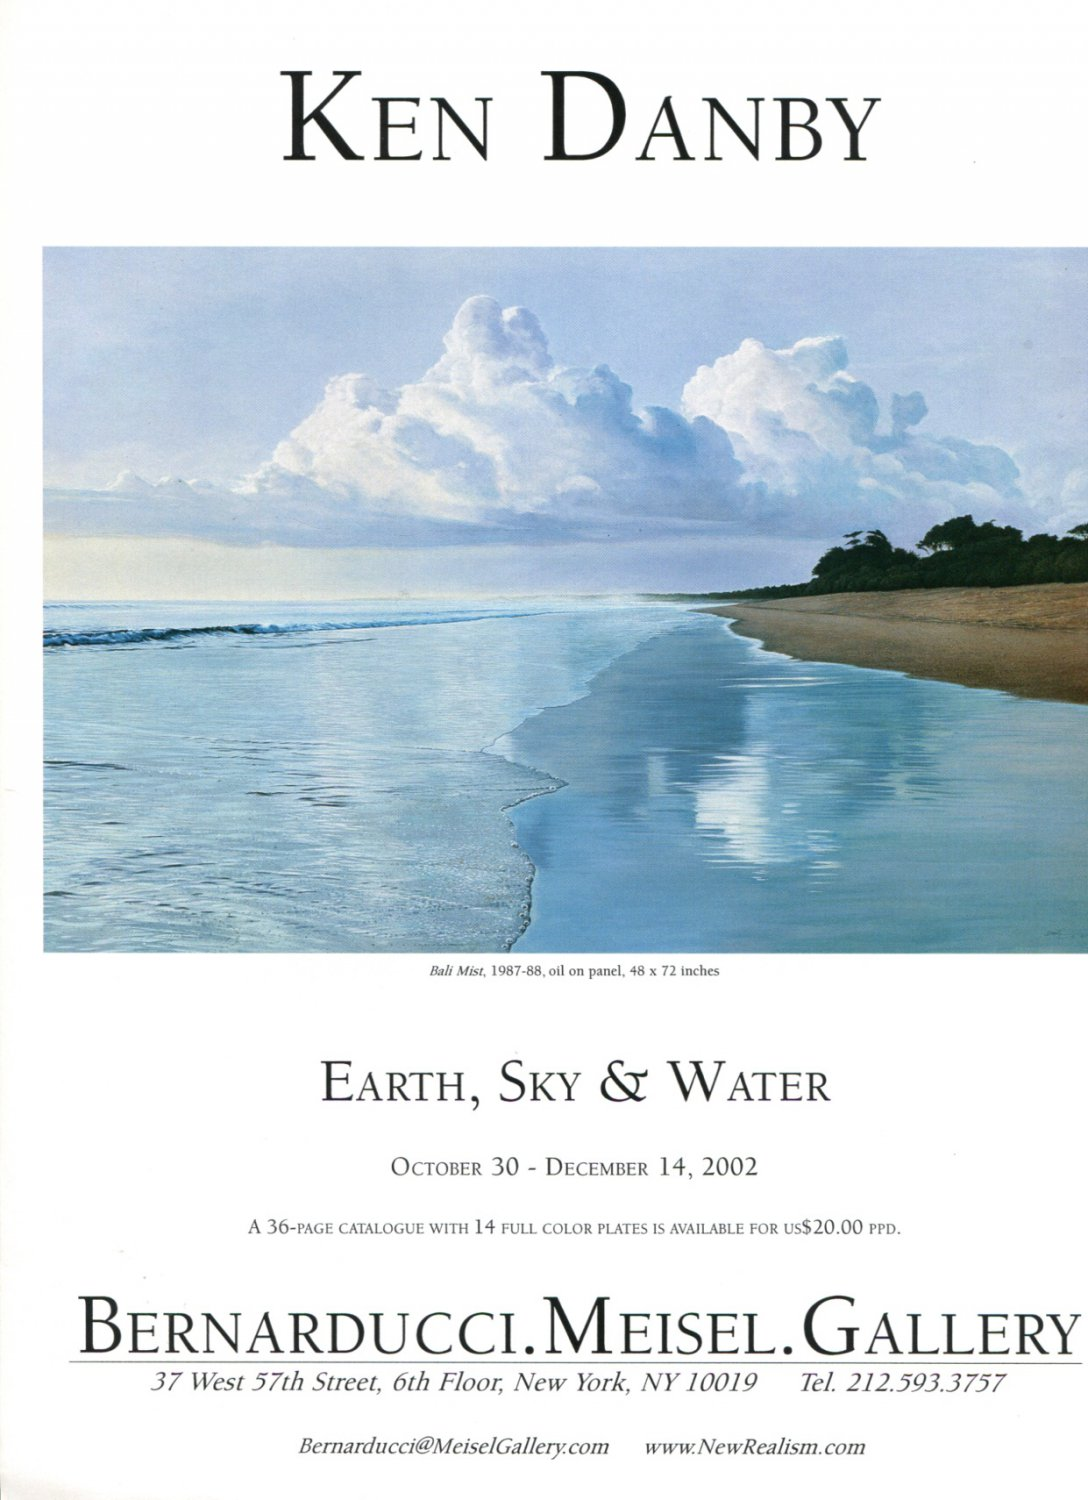 Ken Danby Earth Sky & Water 2002 Art Exhibition Ad Advert